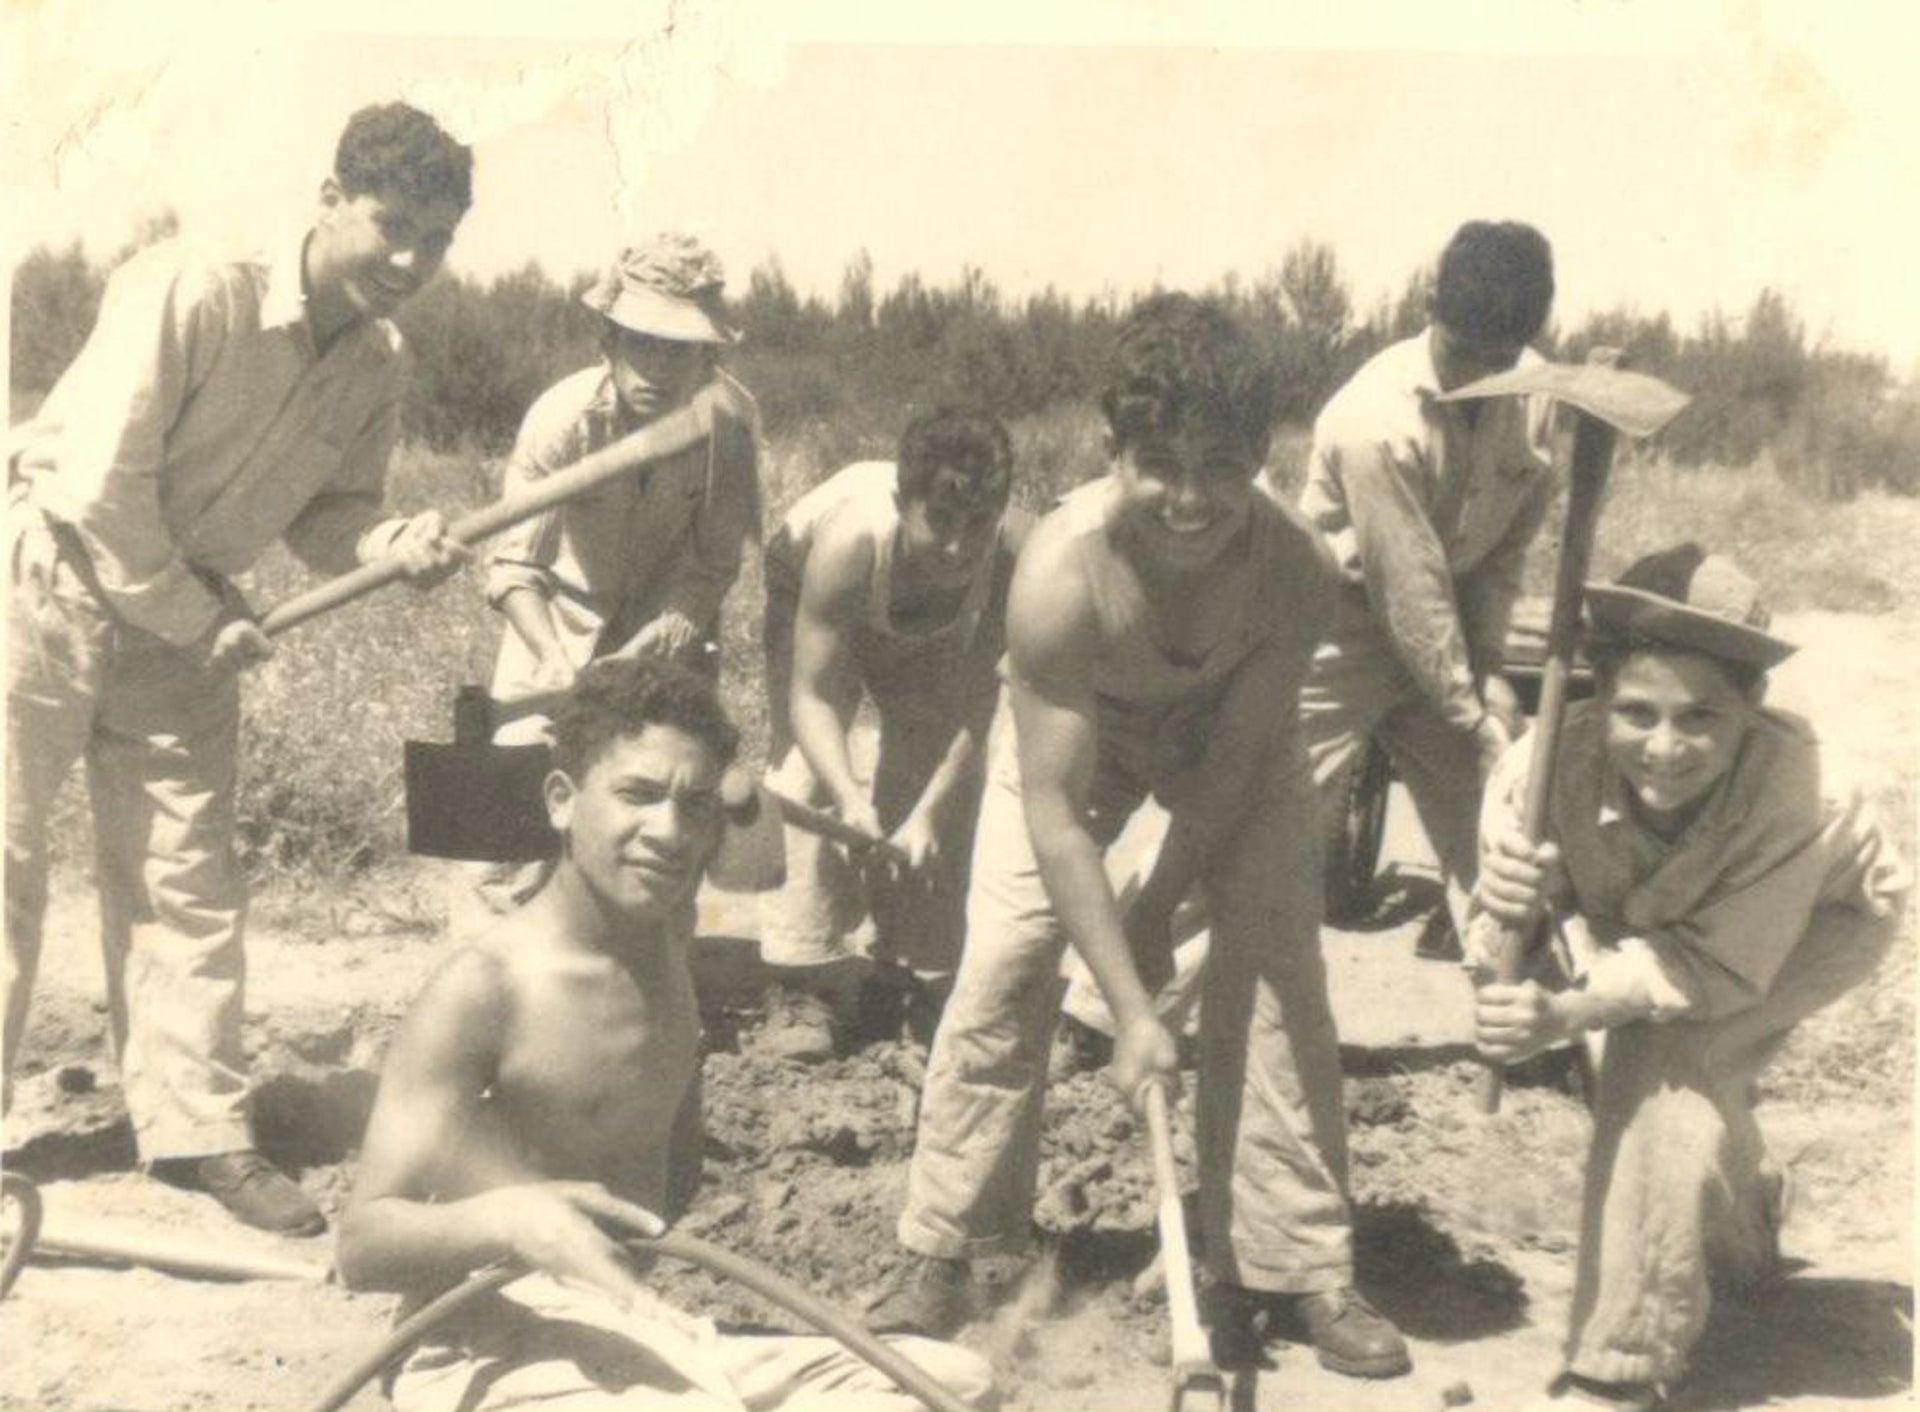 Working the land together. The movement reached its height around 1960.